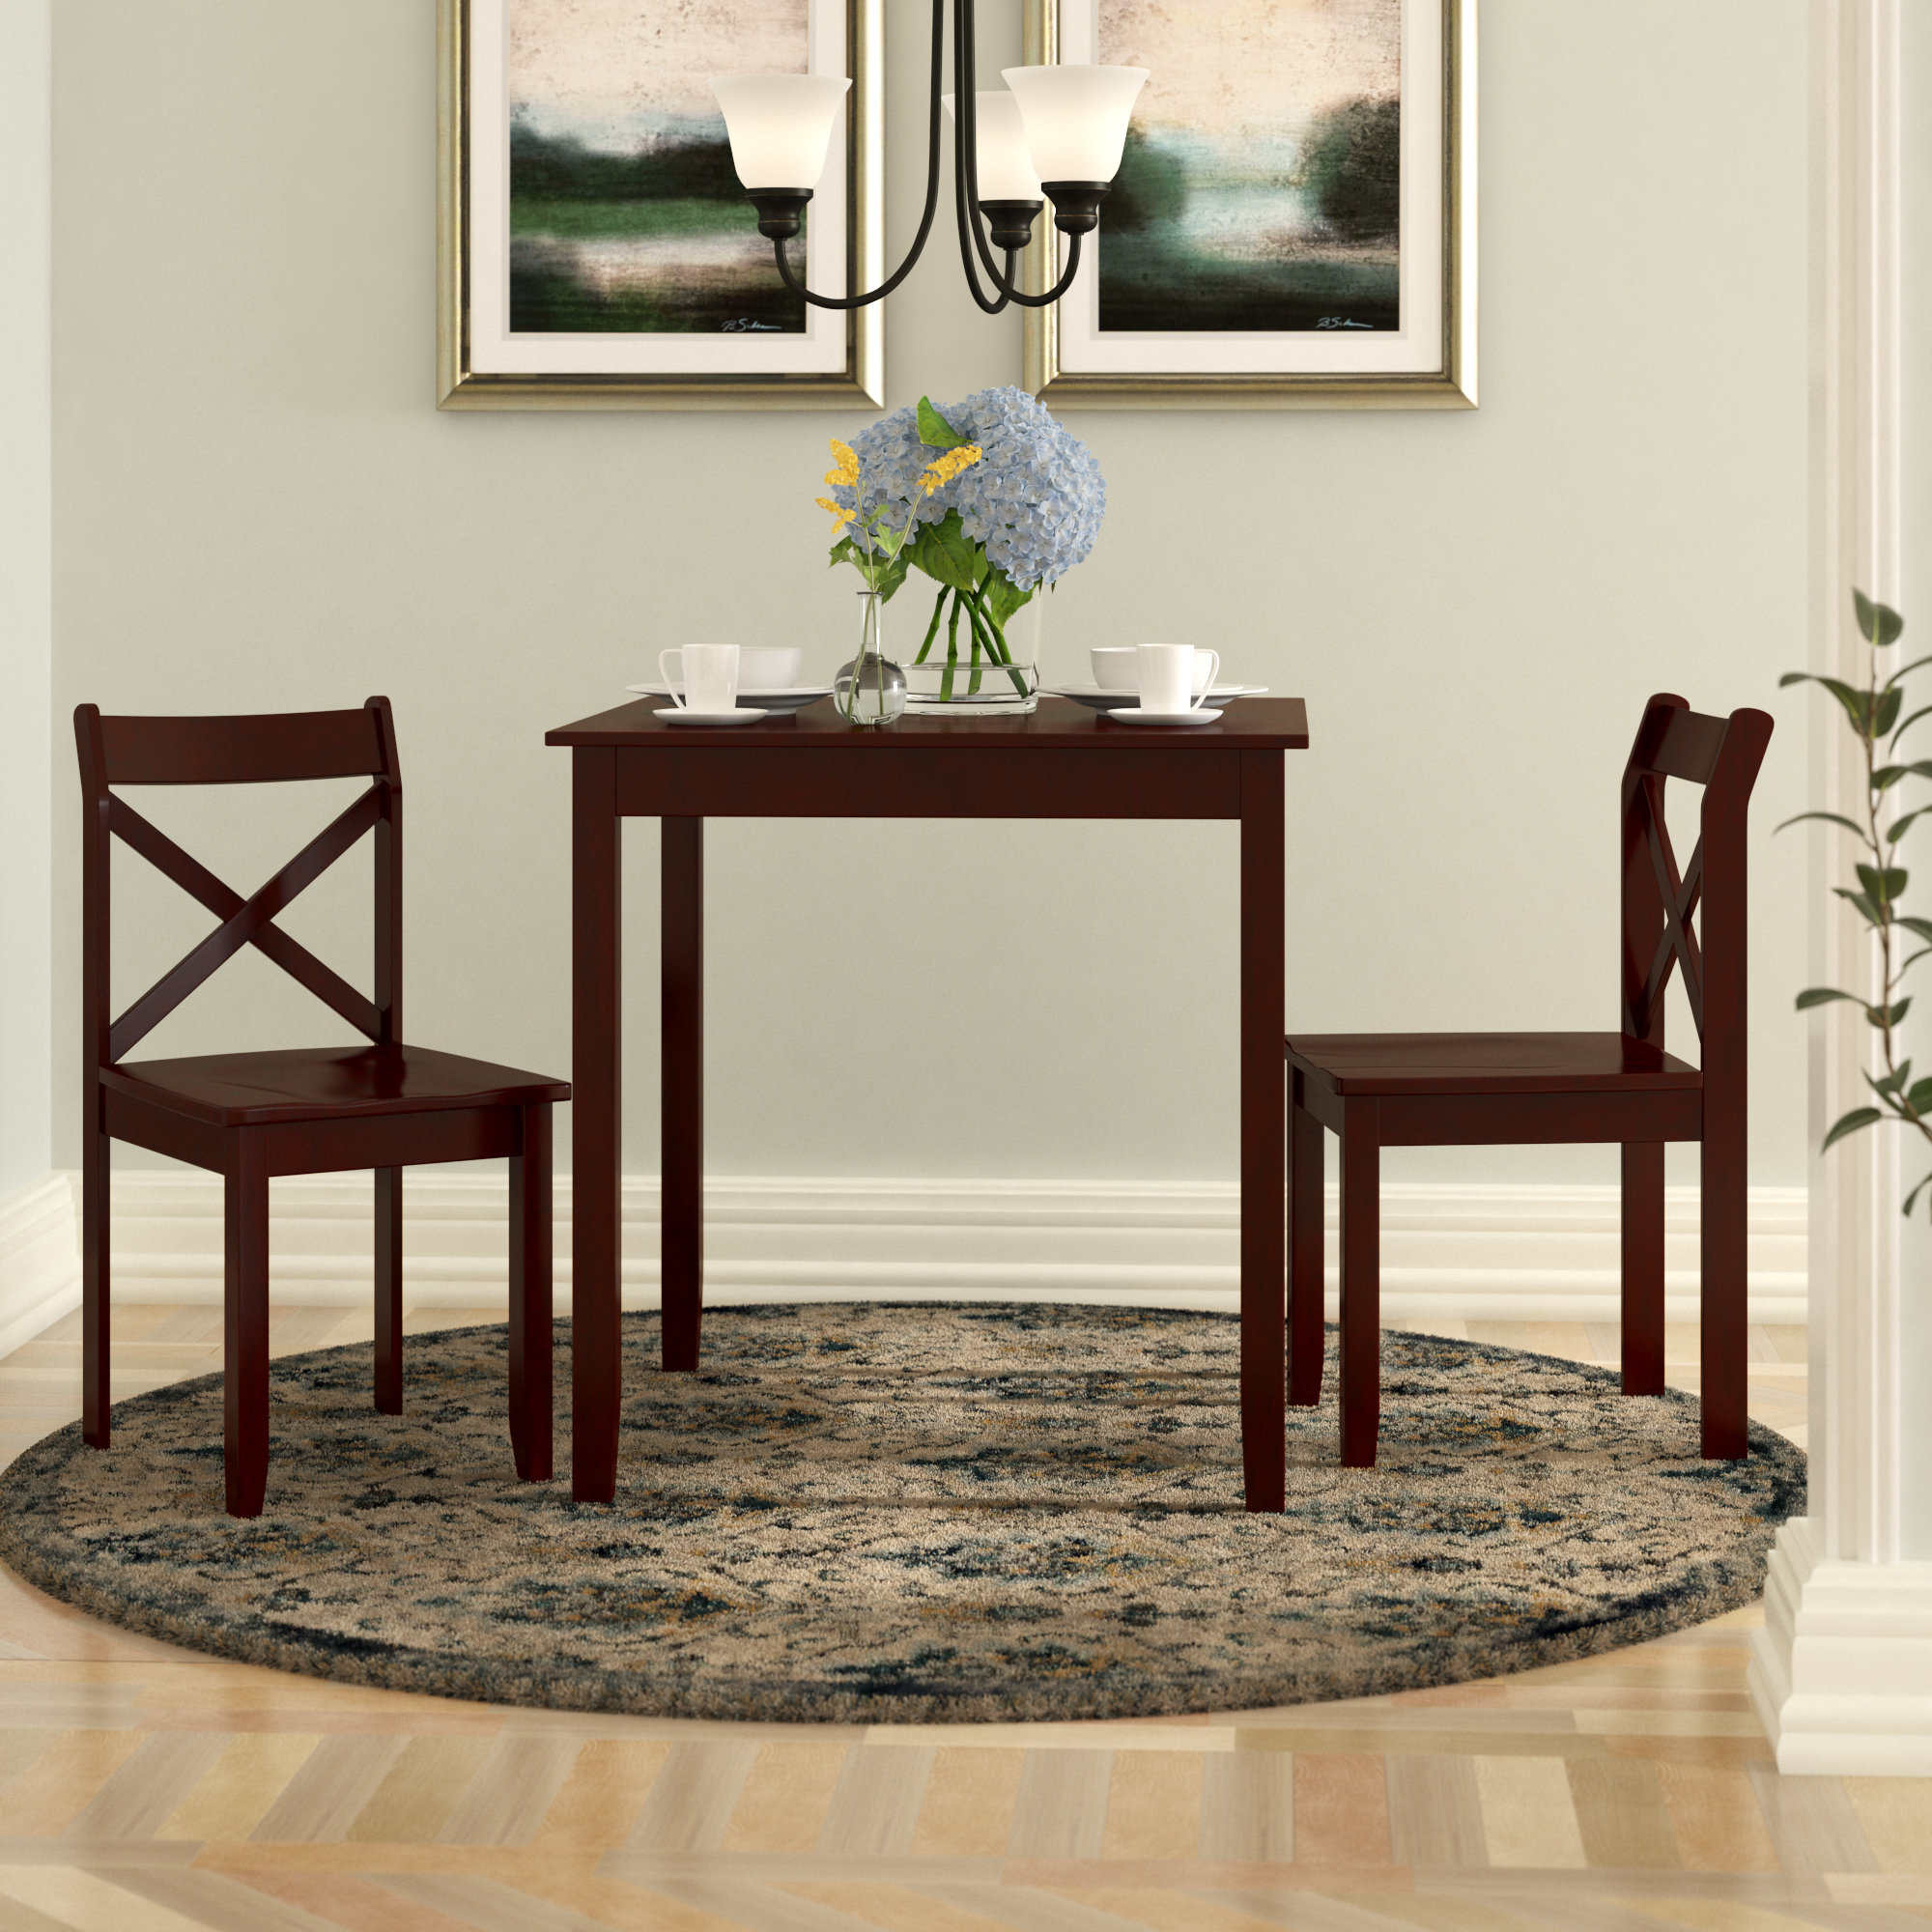 Flossmoor 3 Piece Dining Set With Current Kinsler 3 Piece Bistro Sets (View 7 of 20)